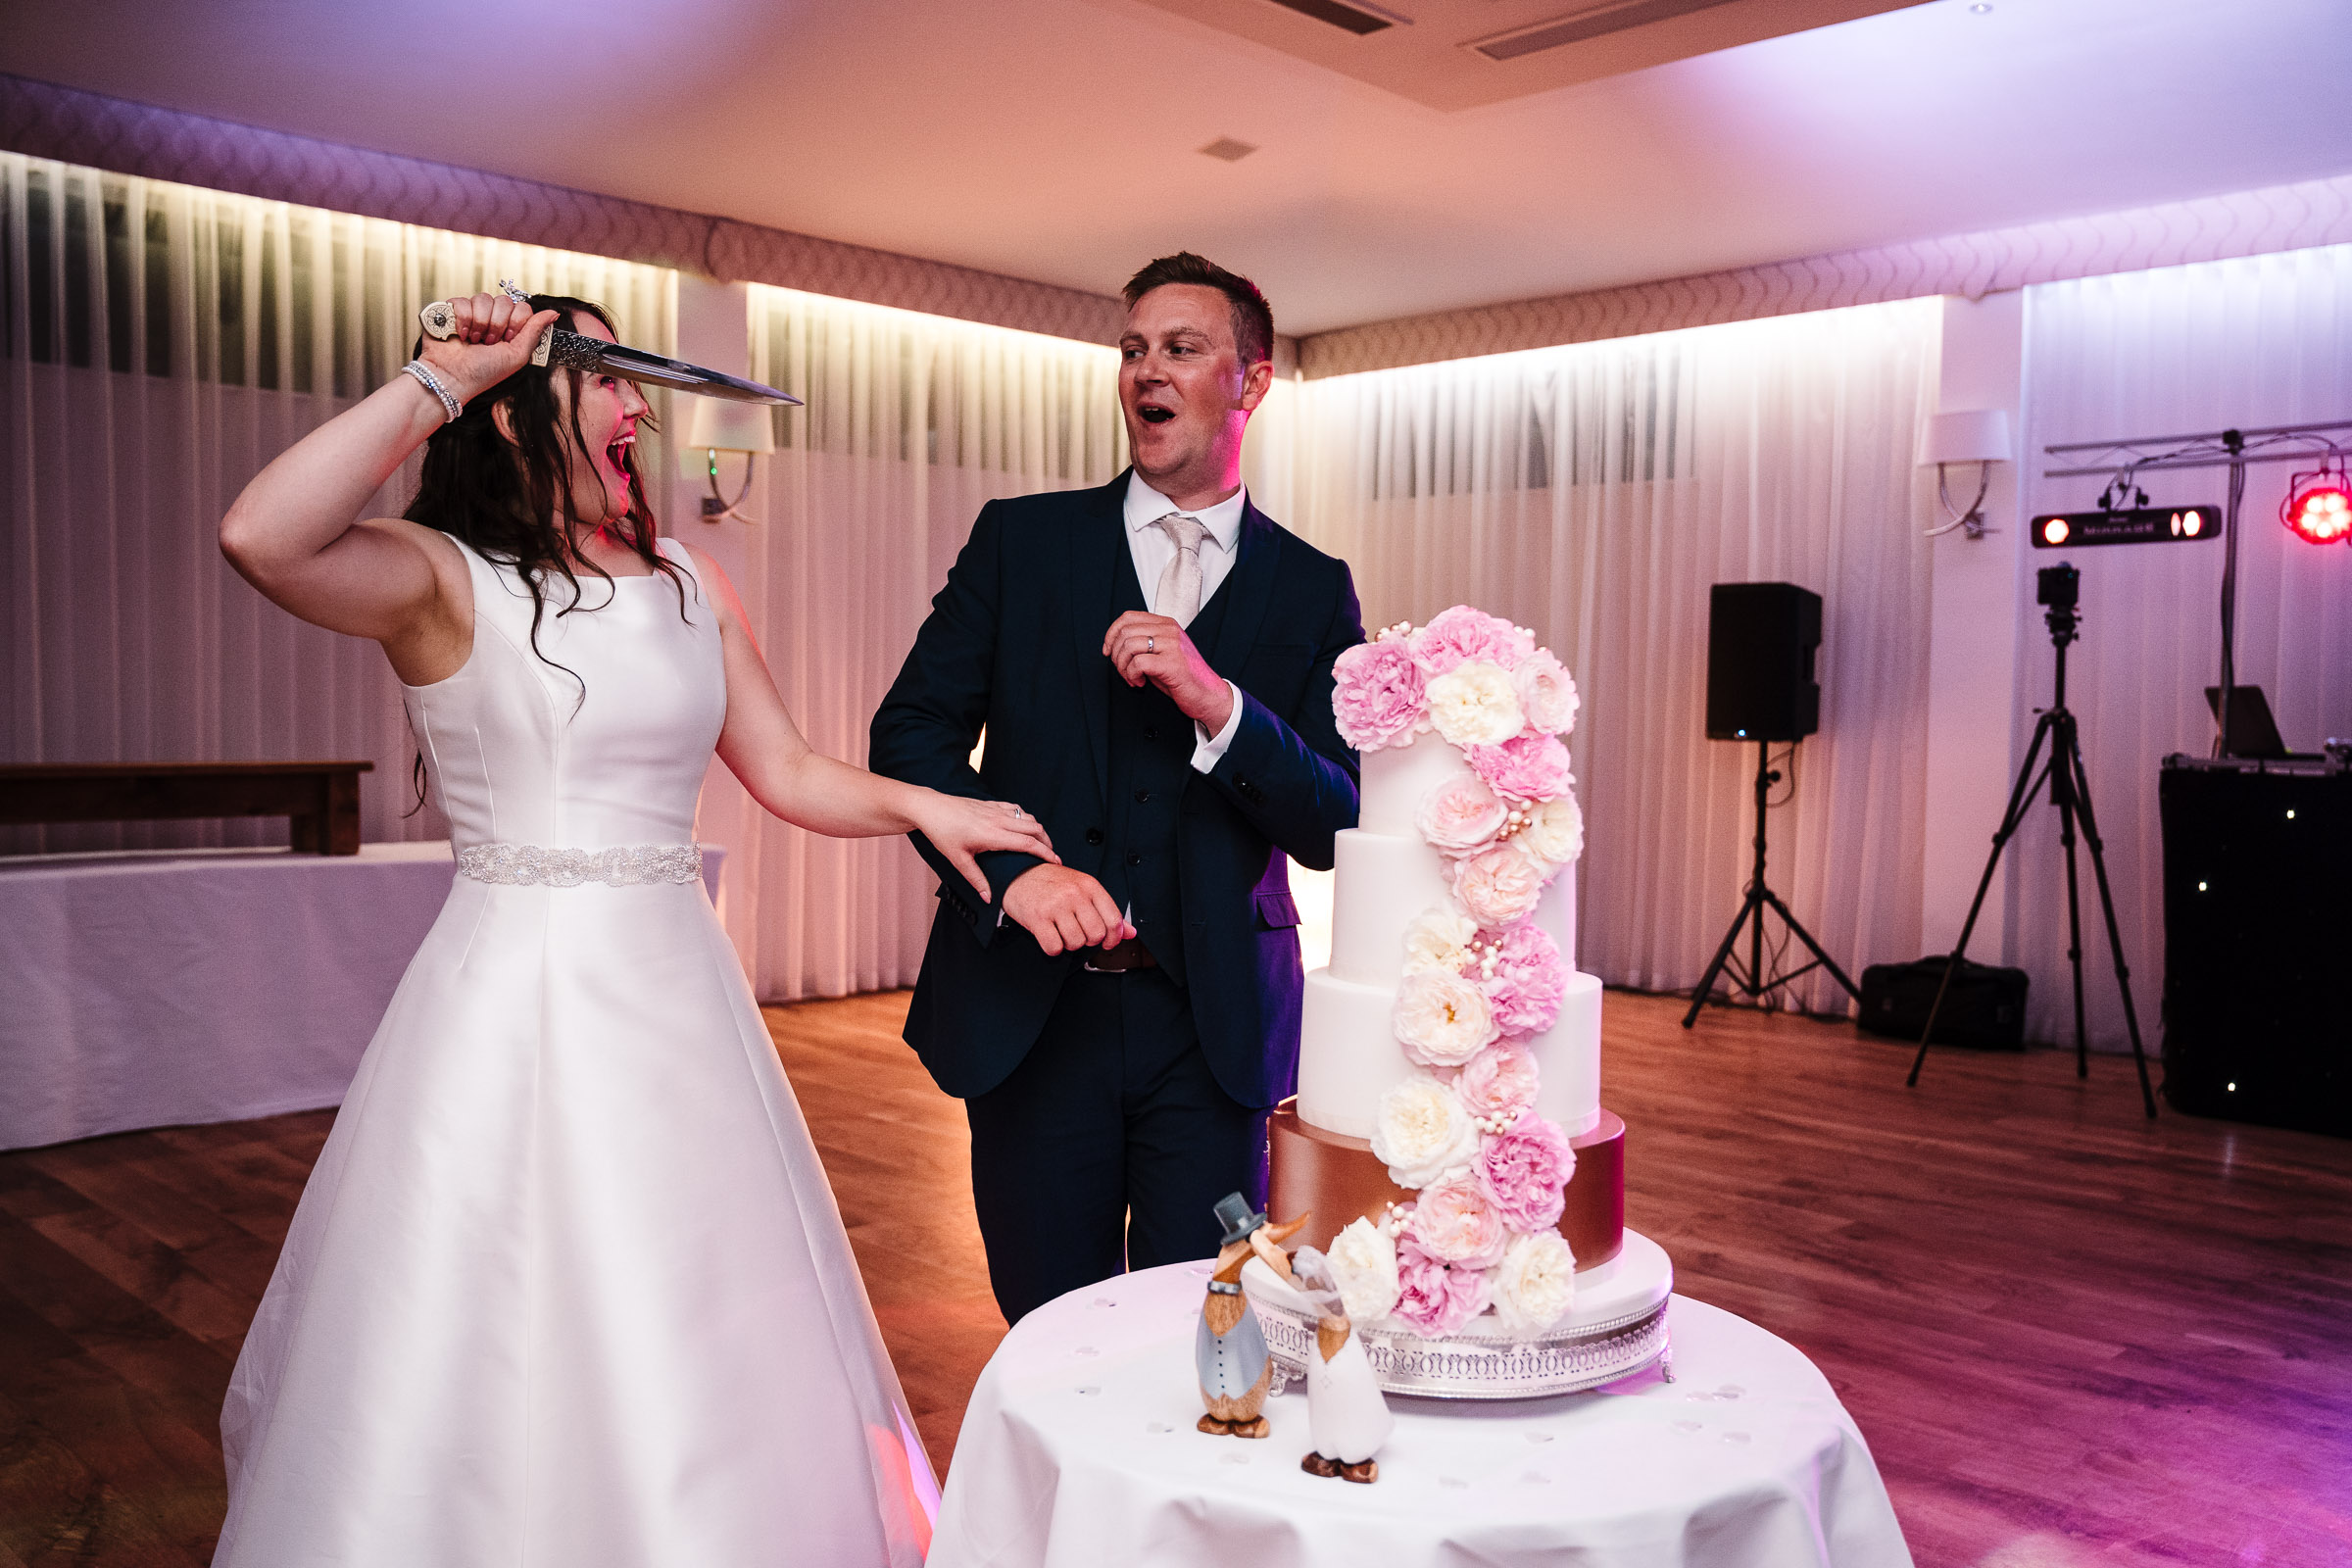 bride holding knife up to groom as a joke while cake cutting at wedding